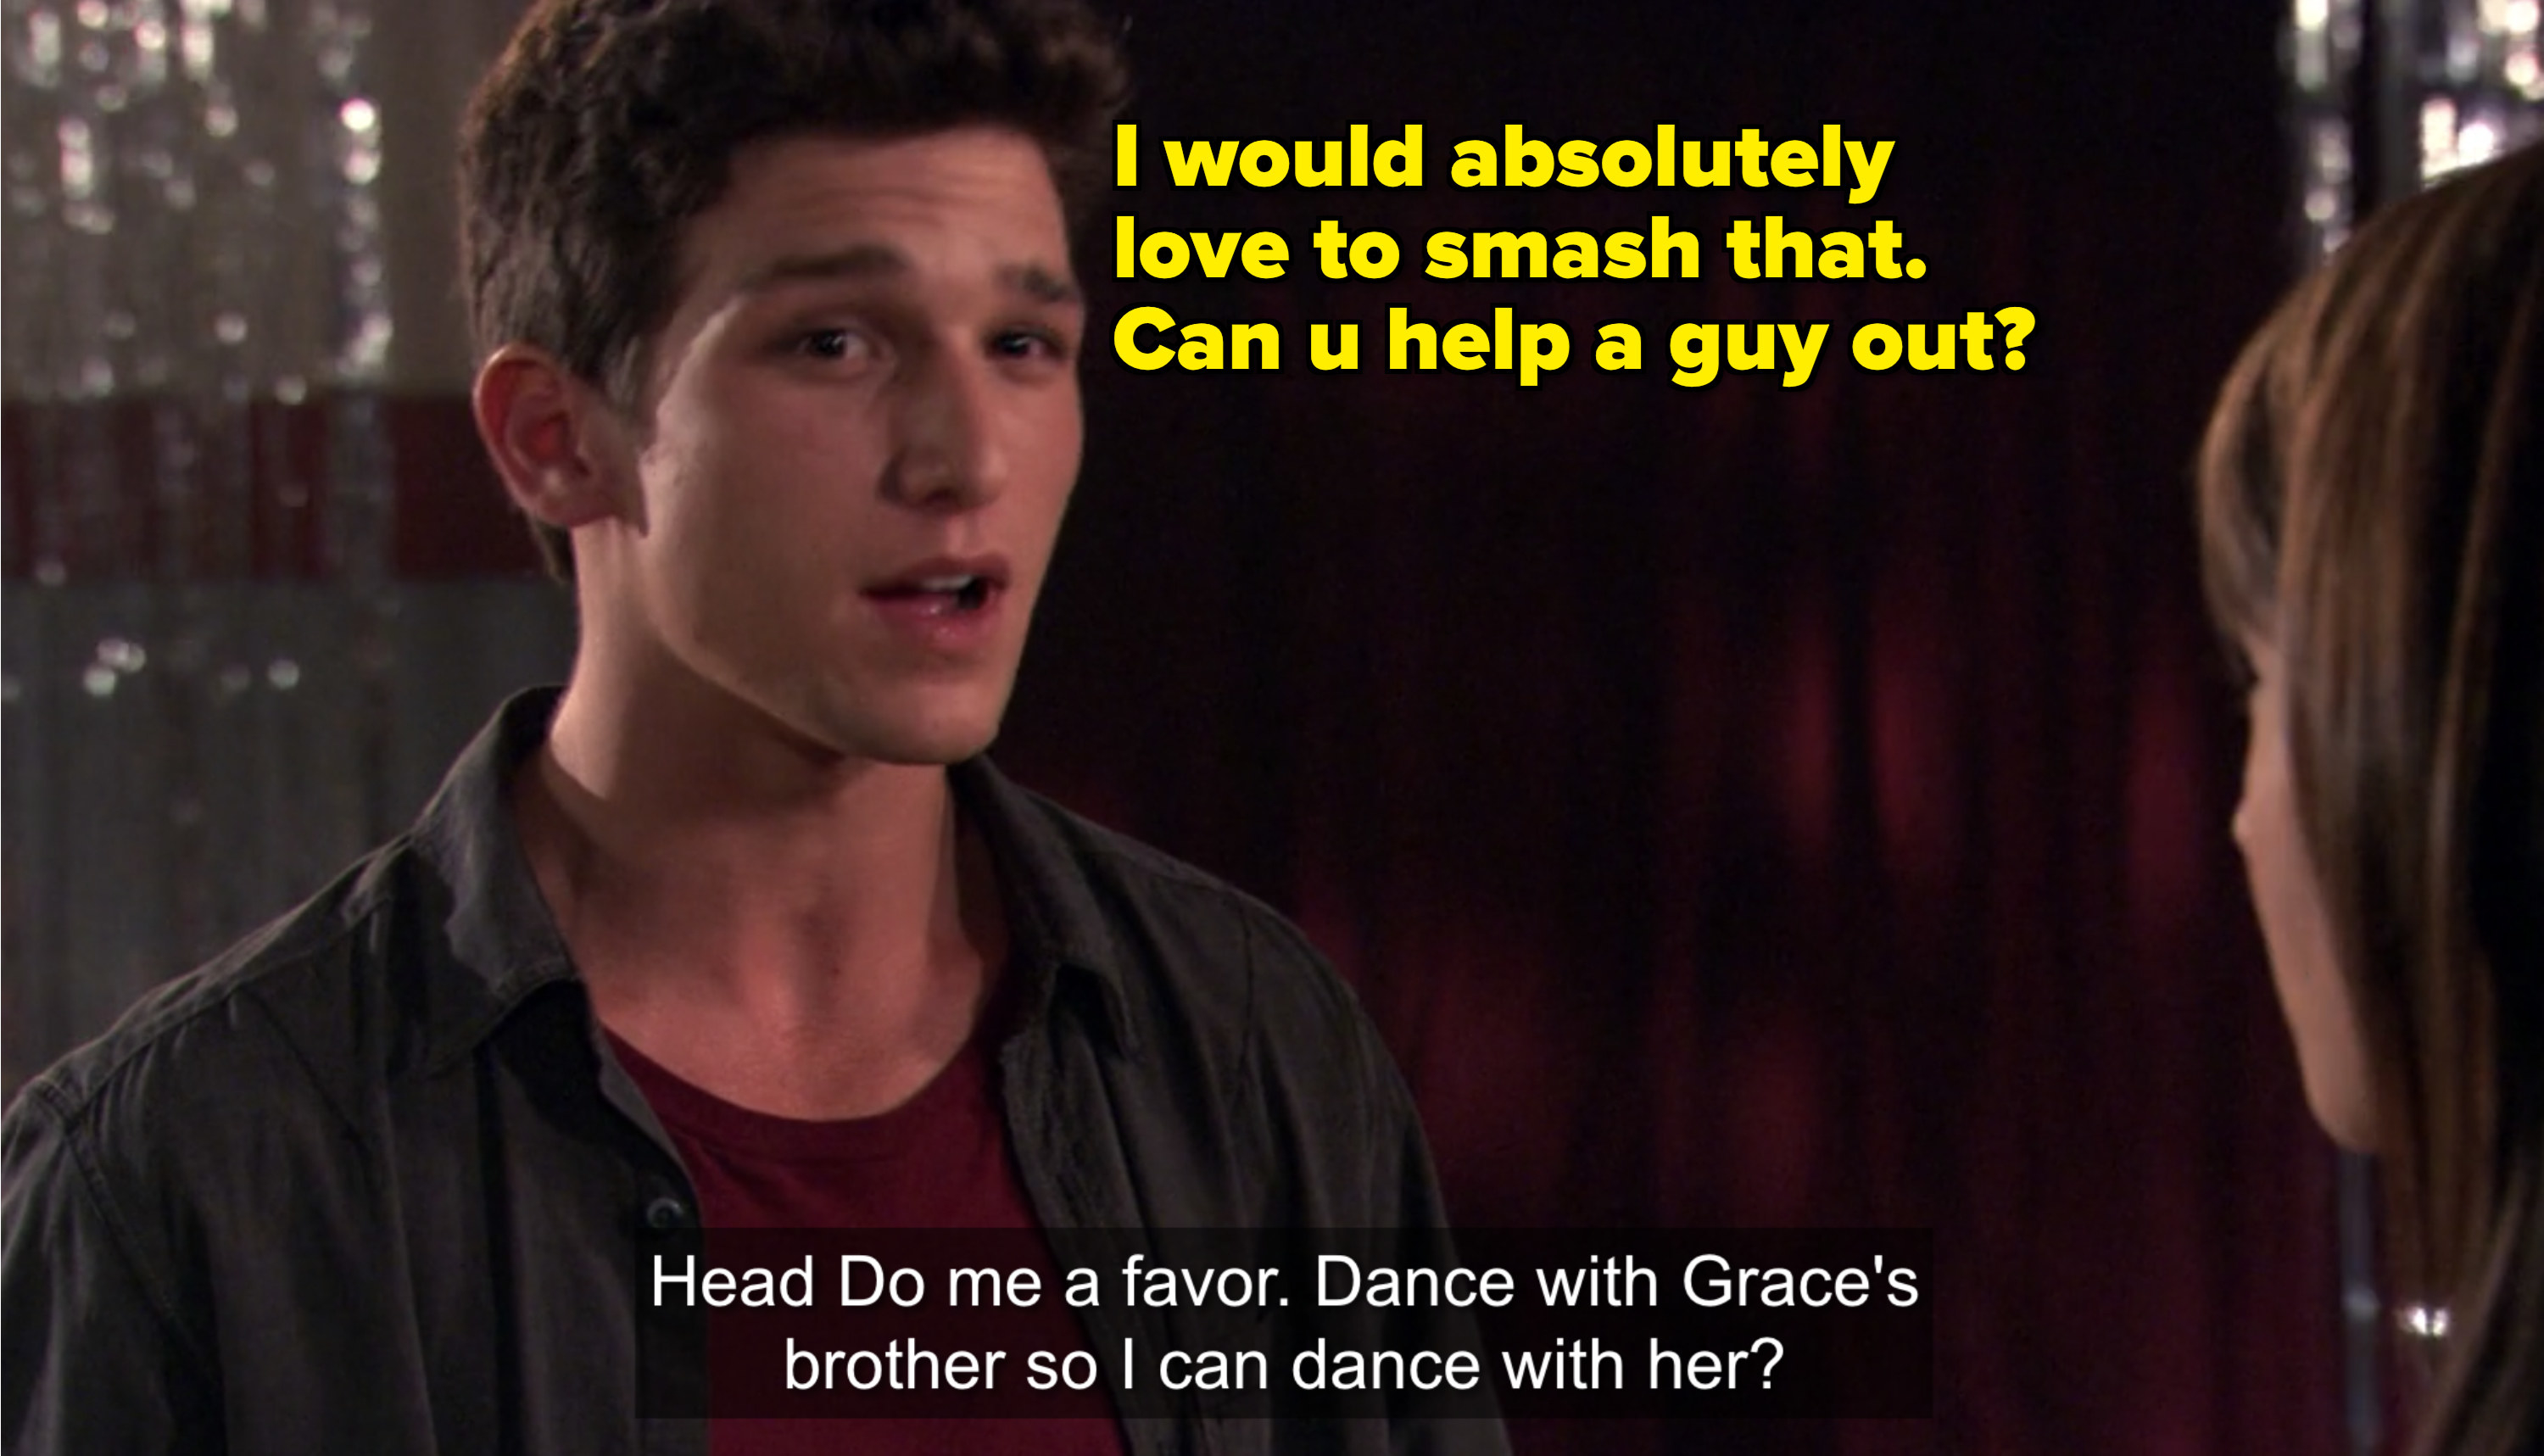 ricky talking to amy at dance